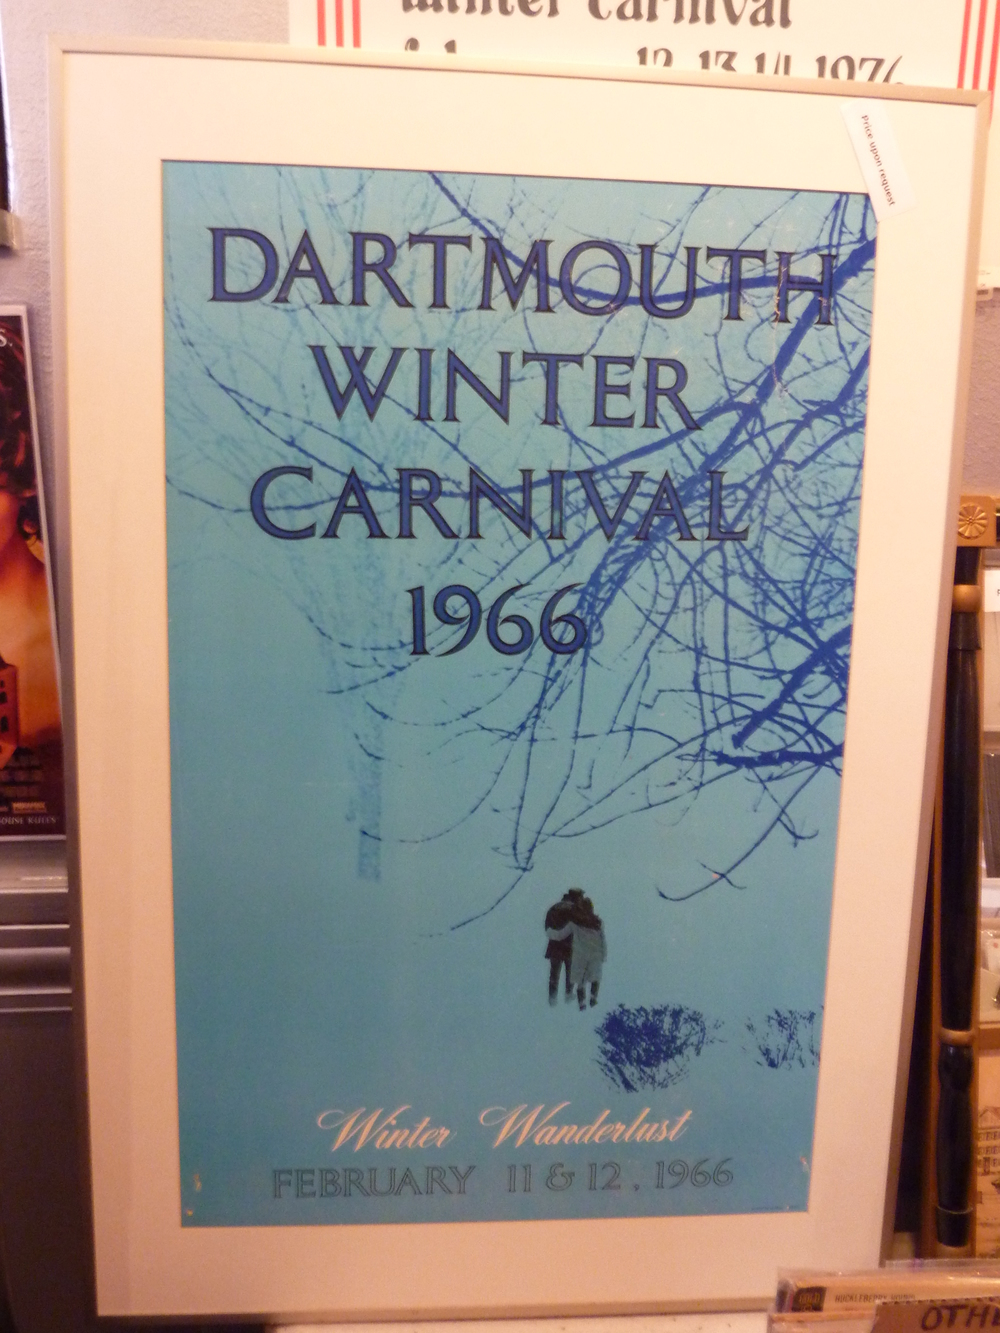 Dartmouth Winter Carnival 1966